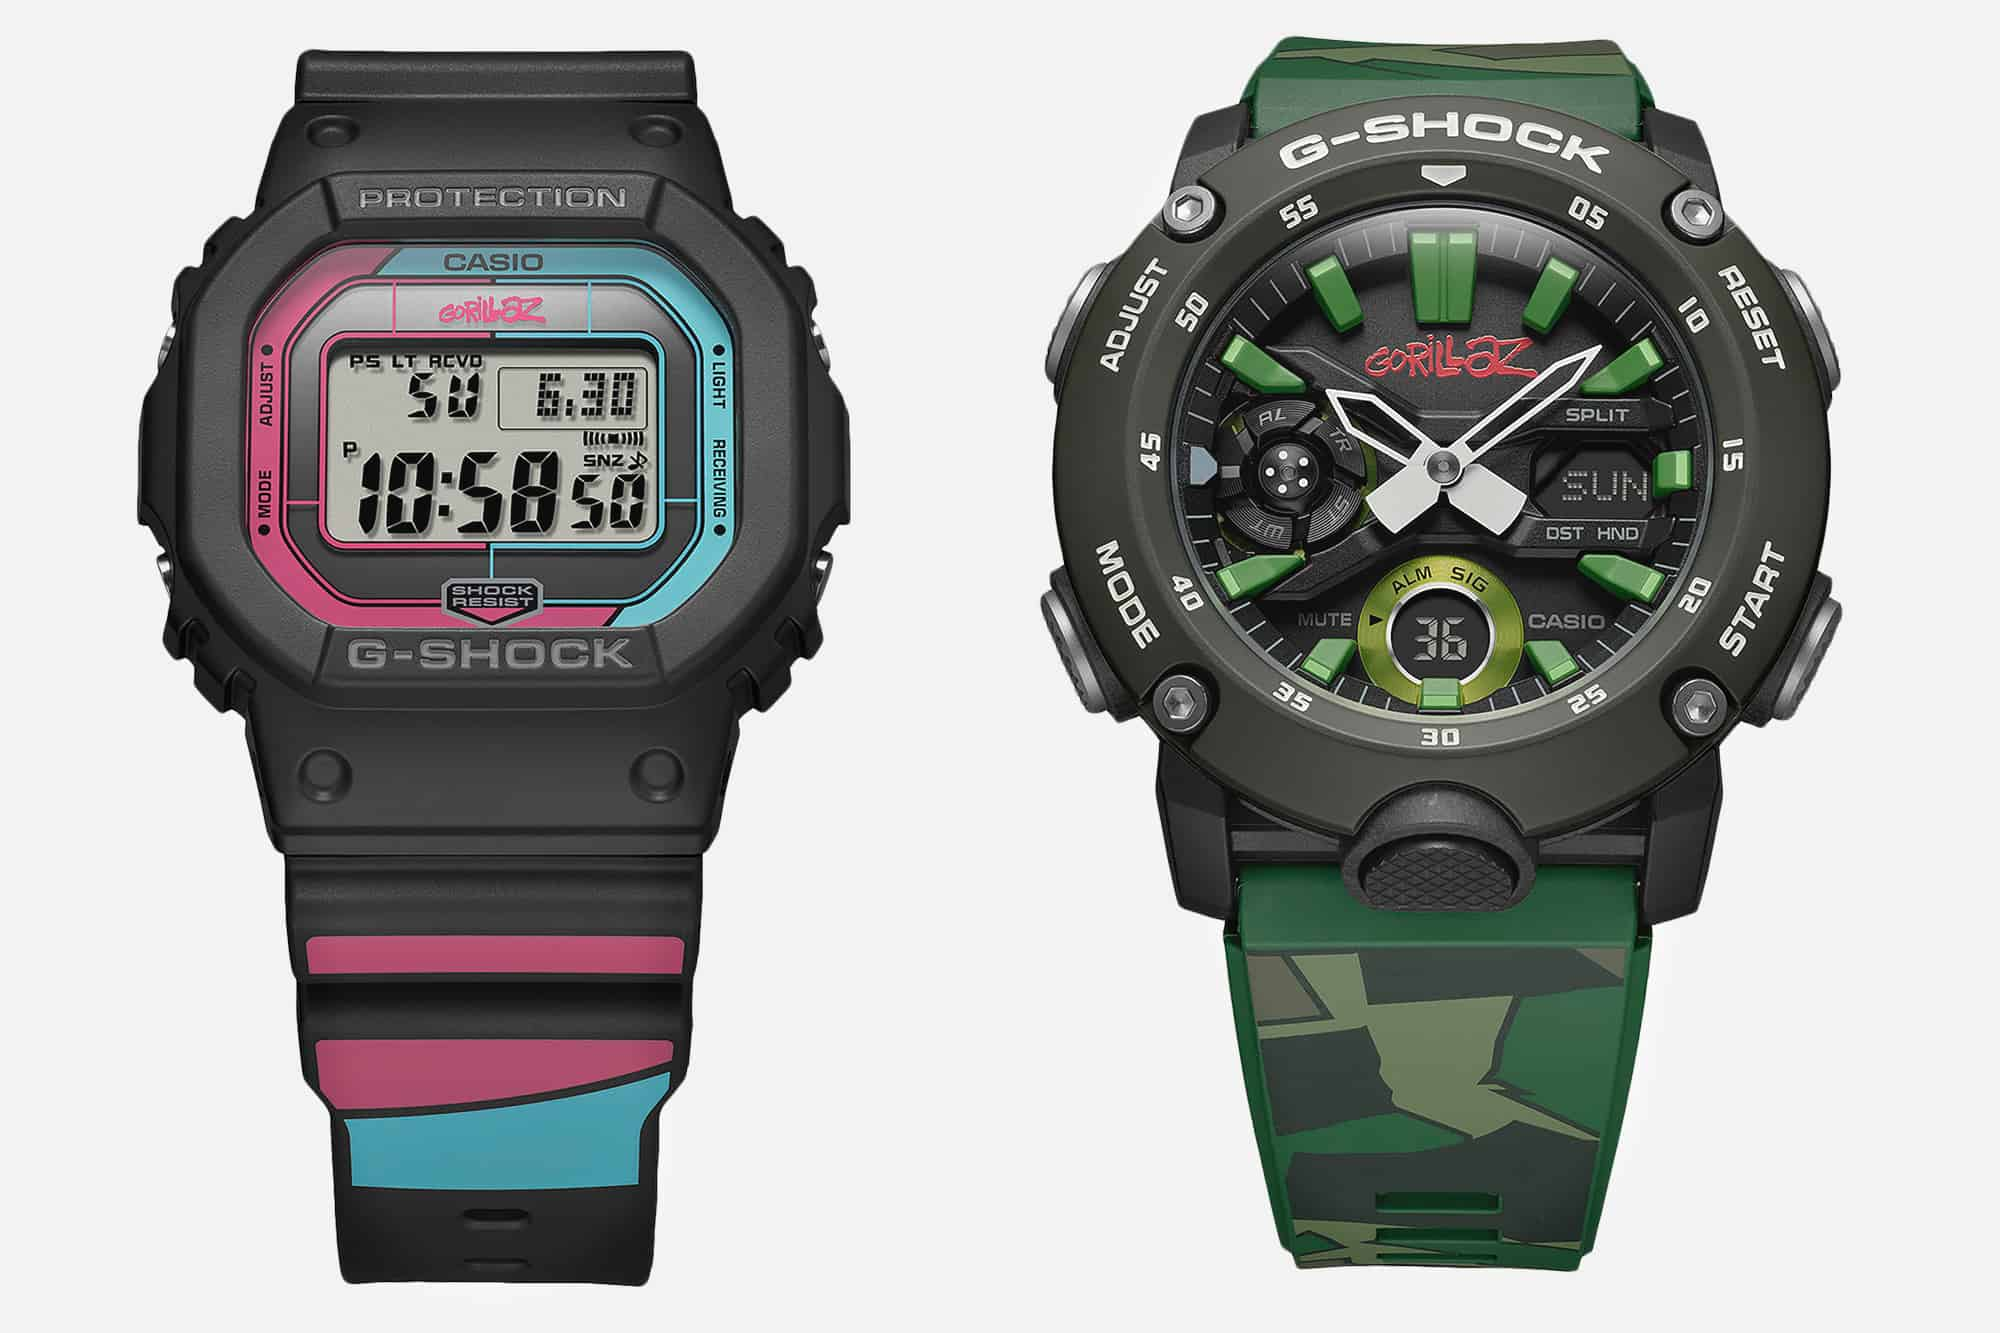 Introducing the Casio G-Shock Gorillaz Collection